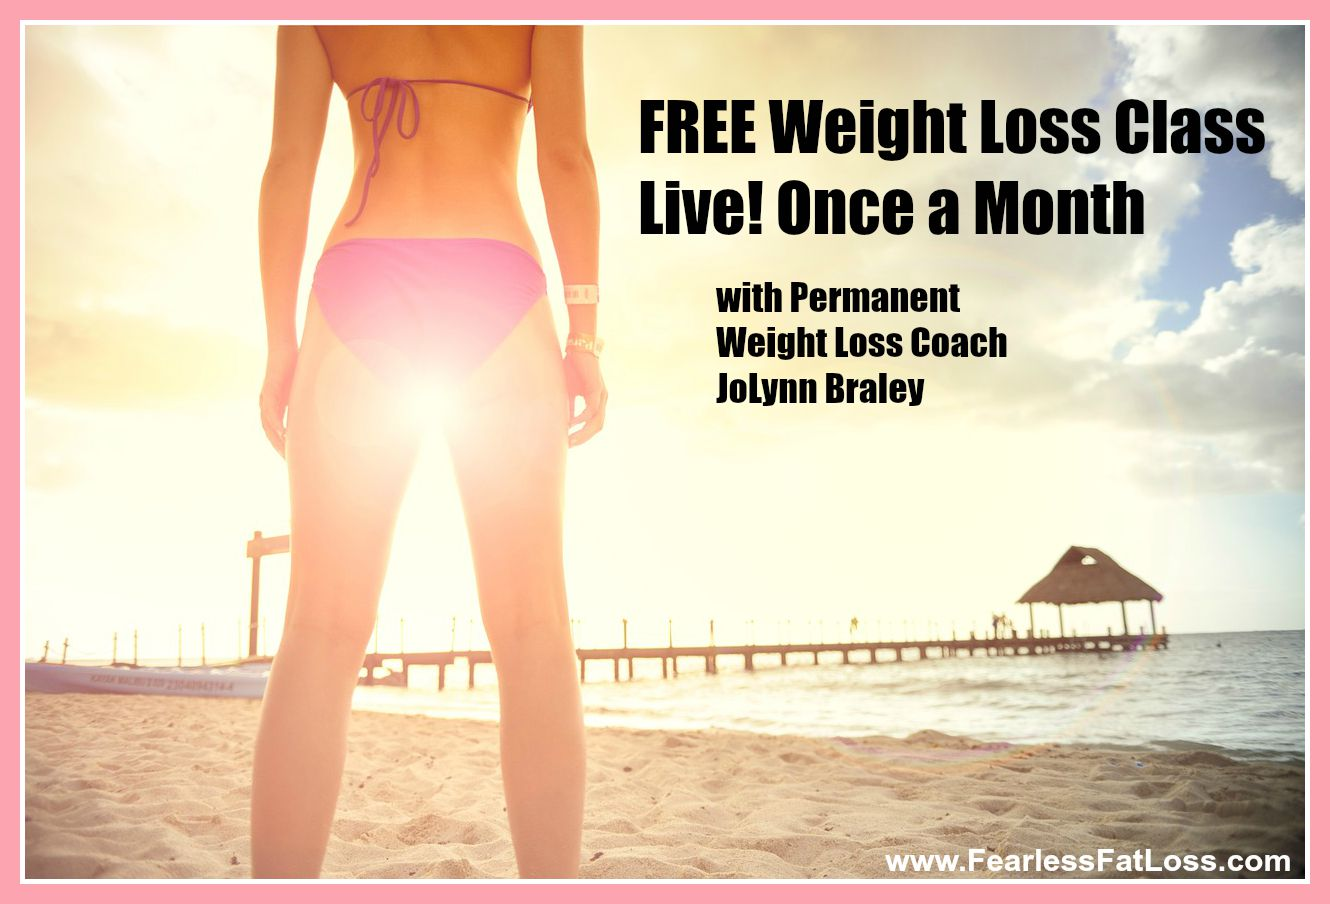 Free Weight Loss Class LIVE Once a Month!